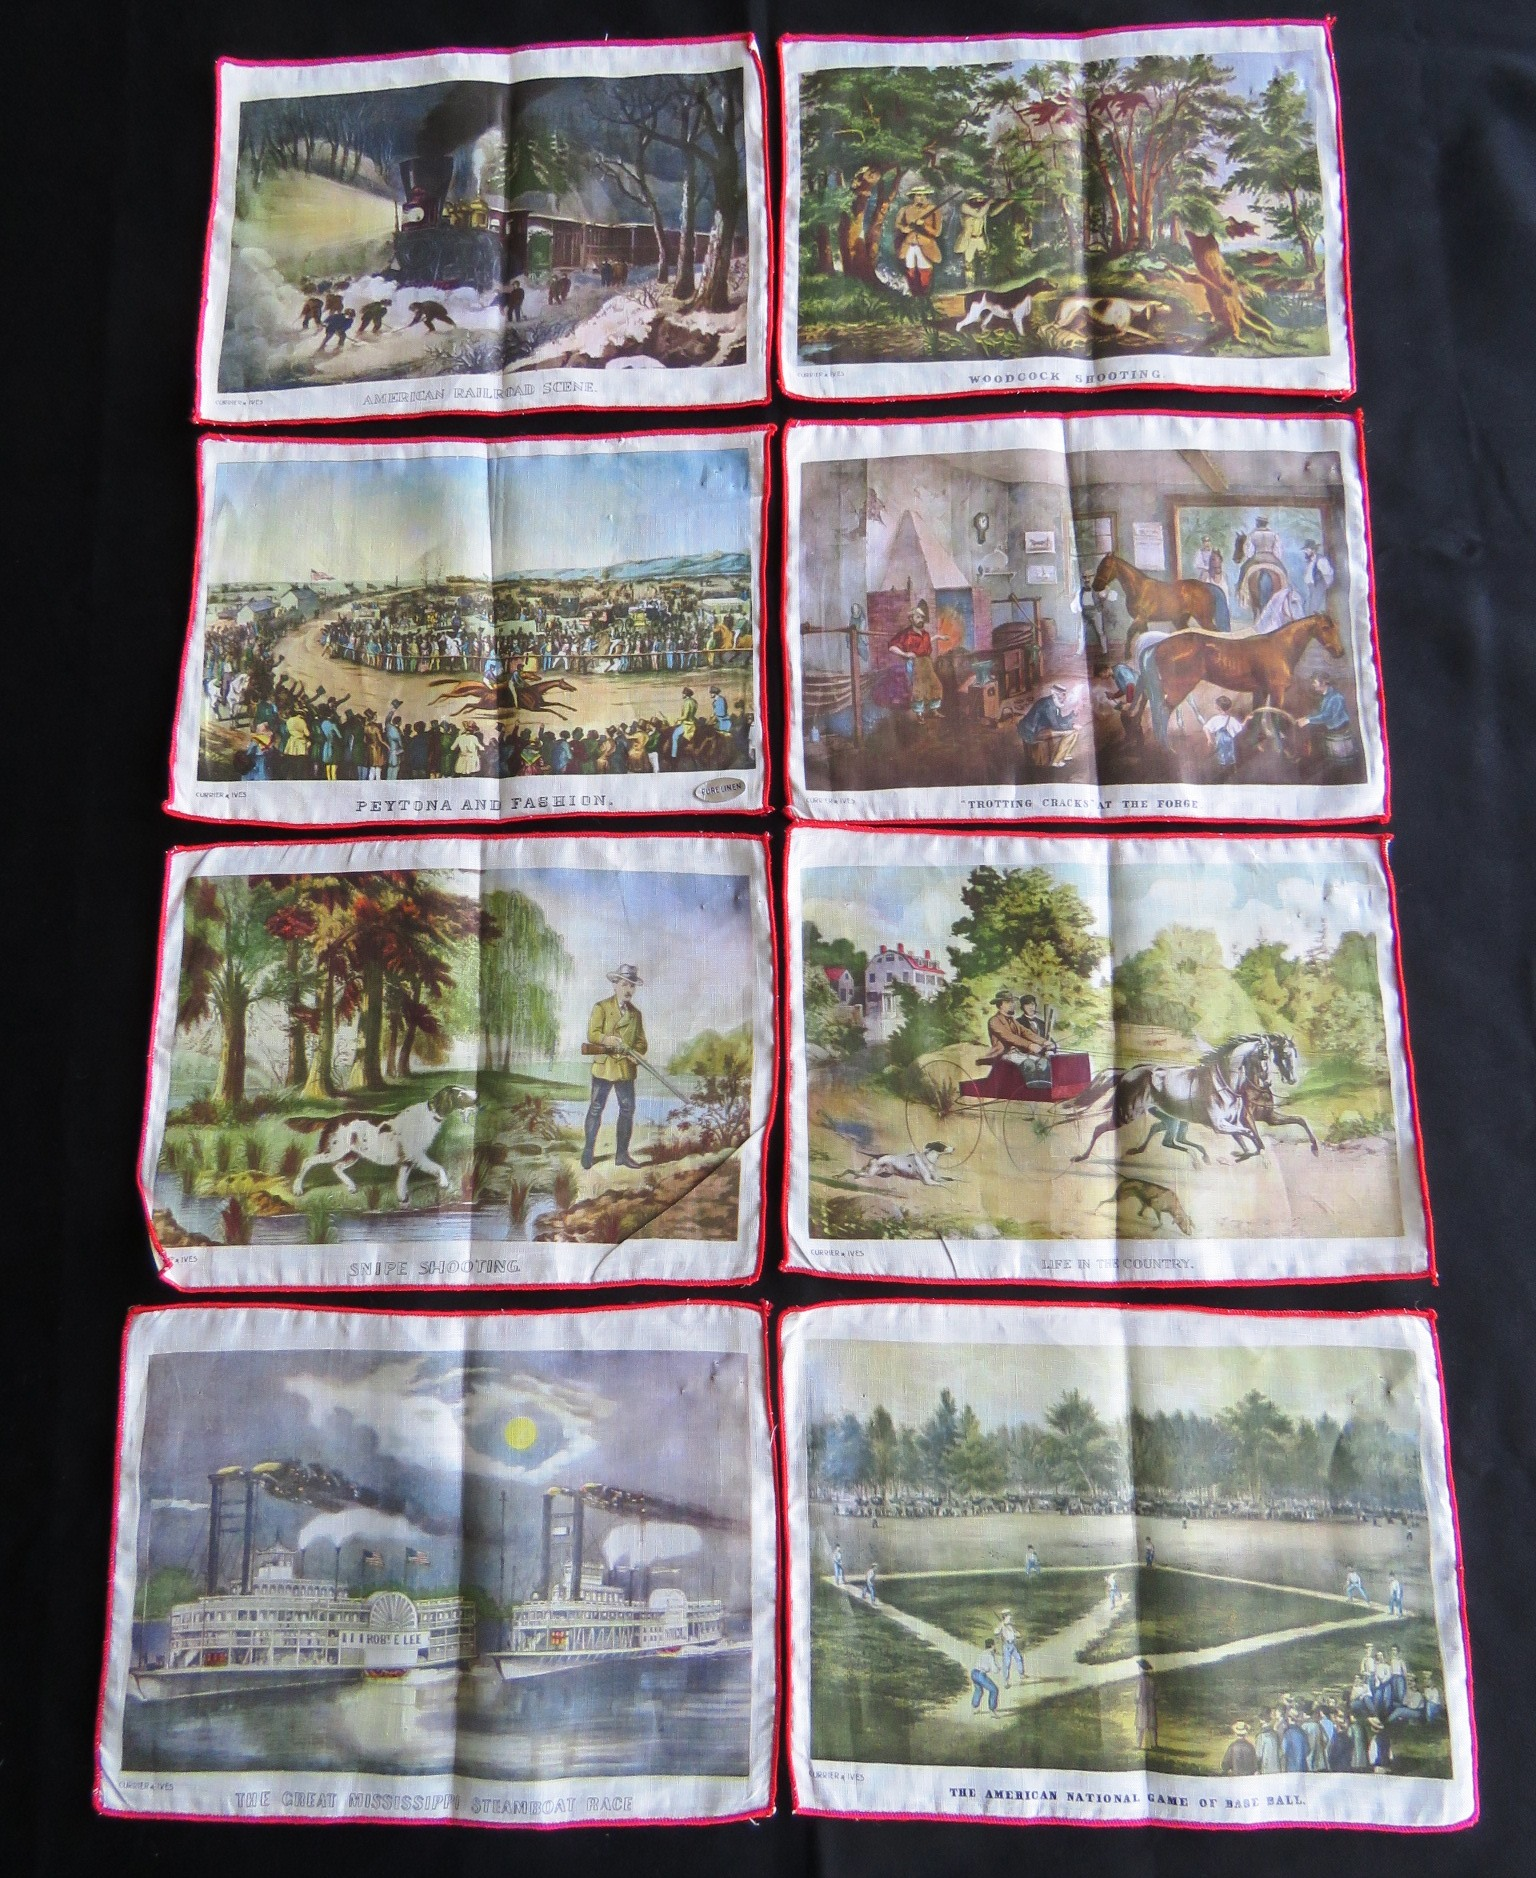 8 Vintage Cocktail Napkins Currier & Ives Table Coaster Mats Printed Graphics (L&T-720)